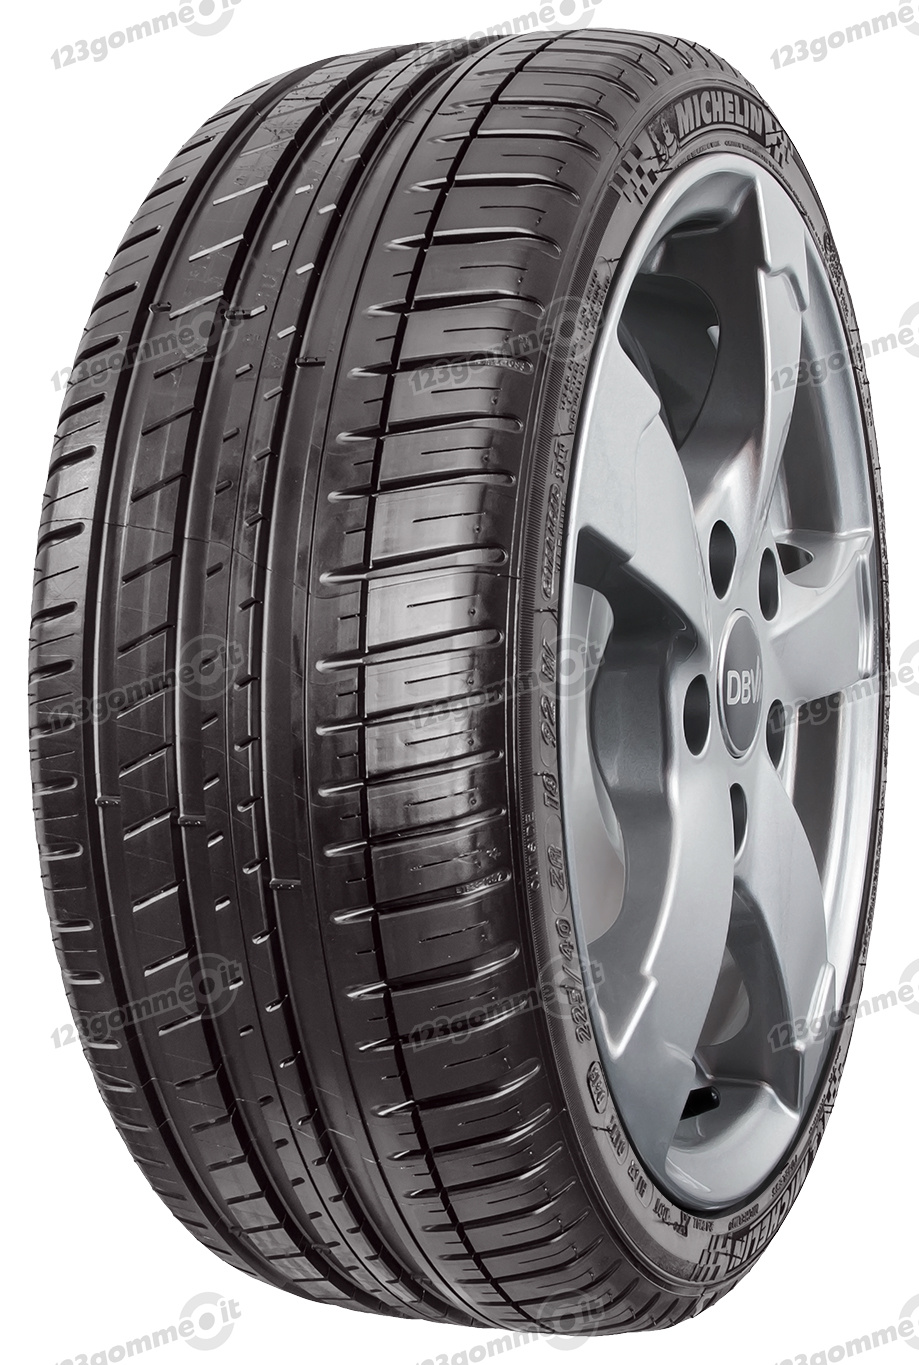 275/35 R18 95Y Pilot Sport 3 MO UHP FSL  Pilot Sport 3 MO UHP FSL